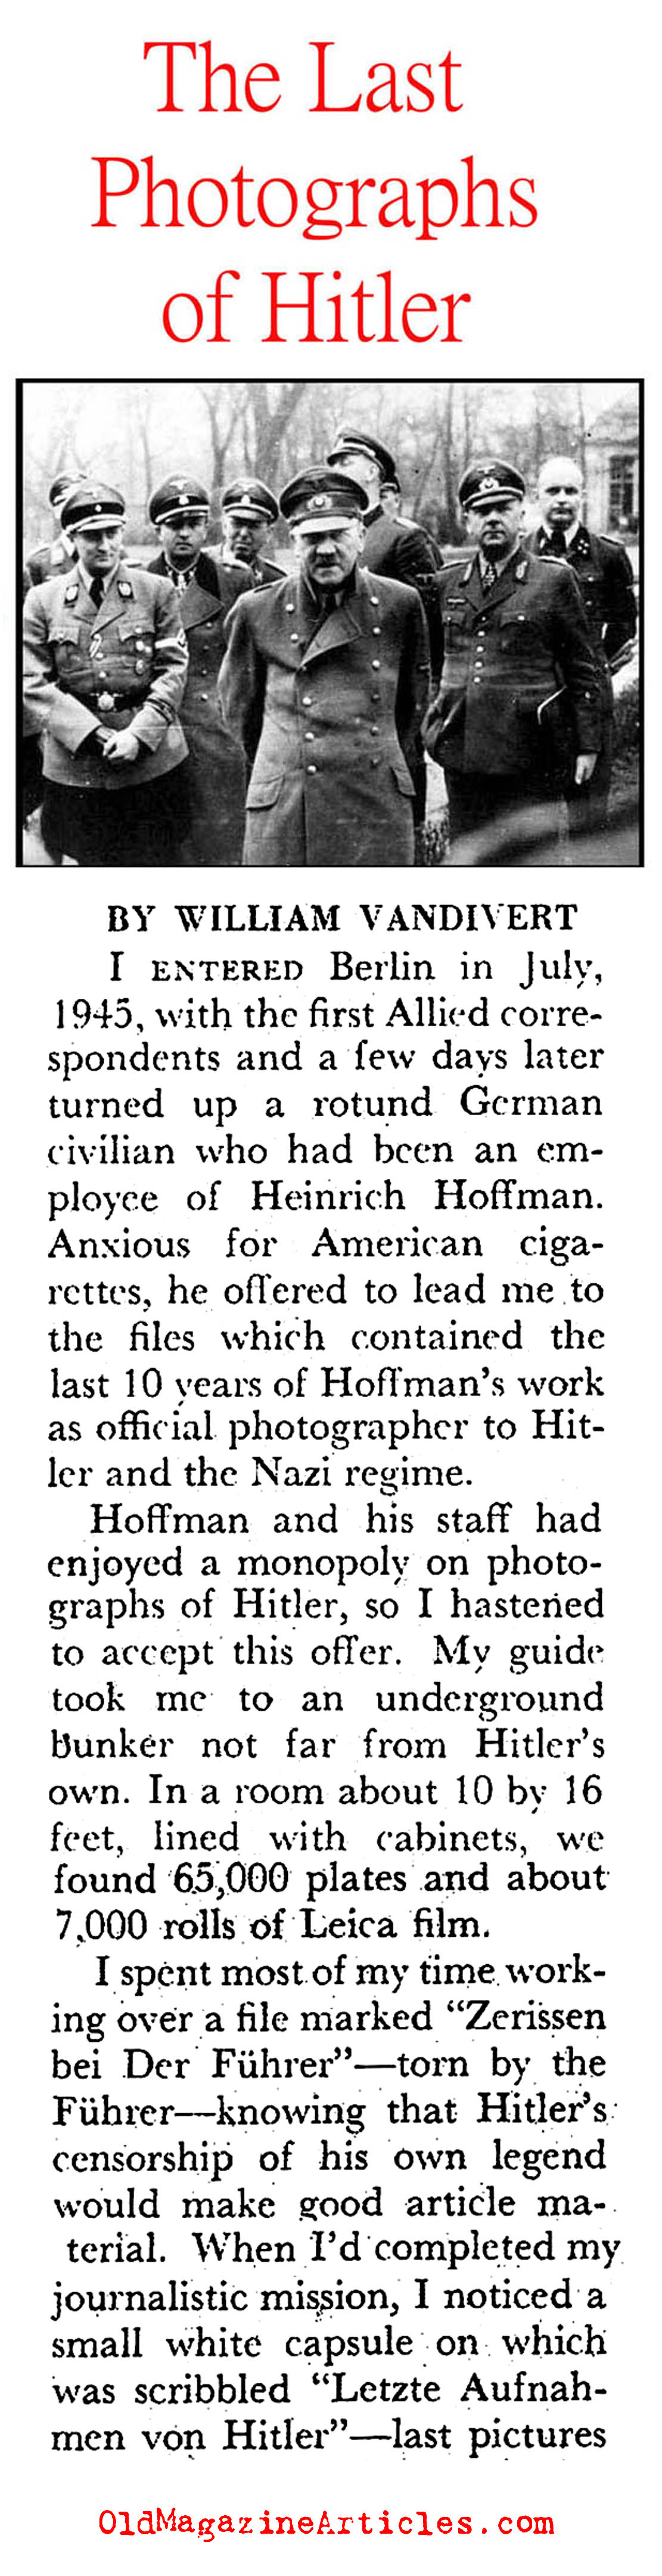 The Last Photographs of Hitler (Pageant Magazine, 1952)